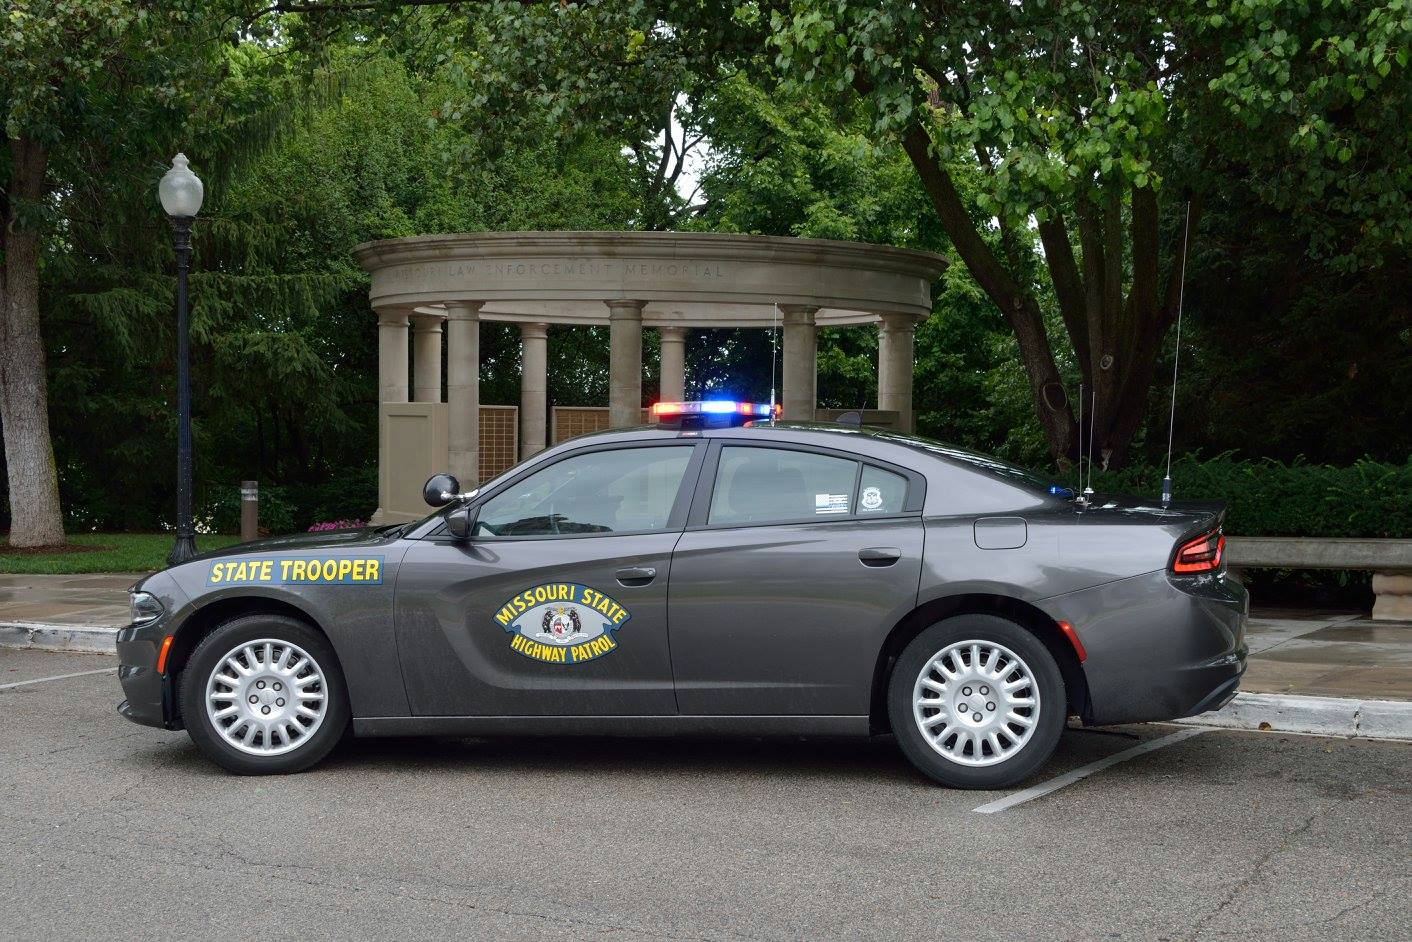 Missouri State Highway Patrol. (American Association of State Troopers|Facebook)